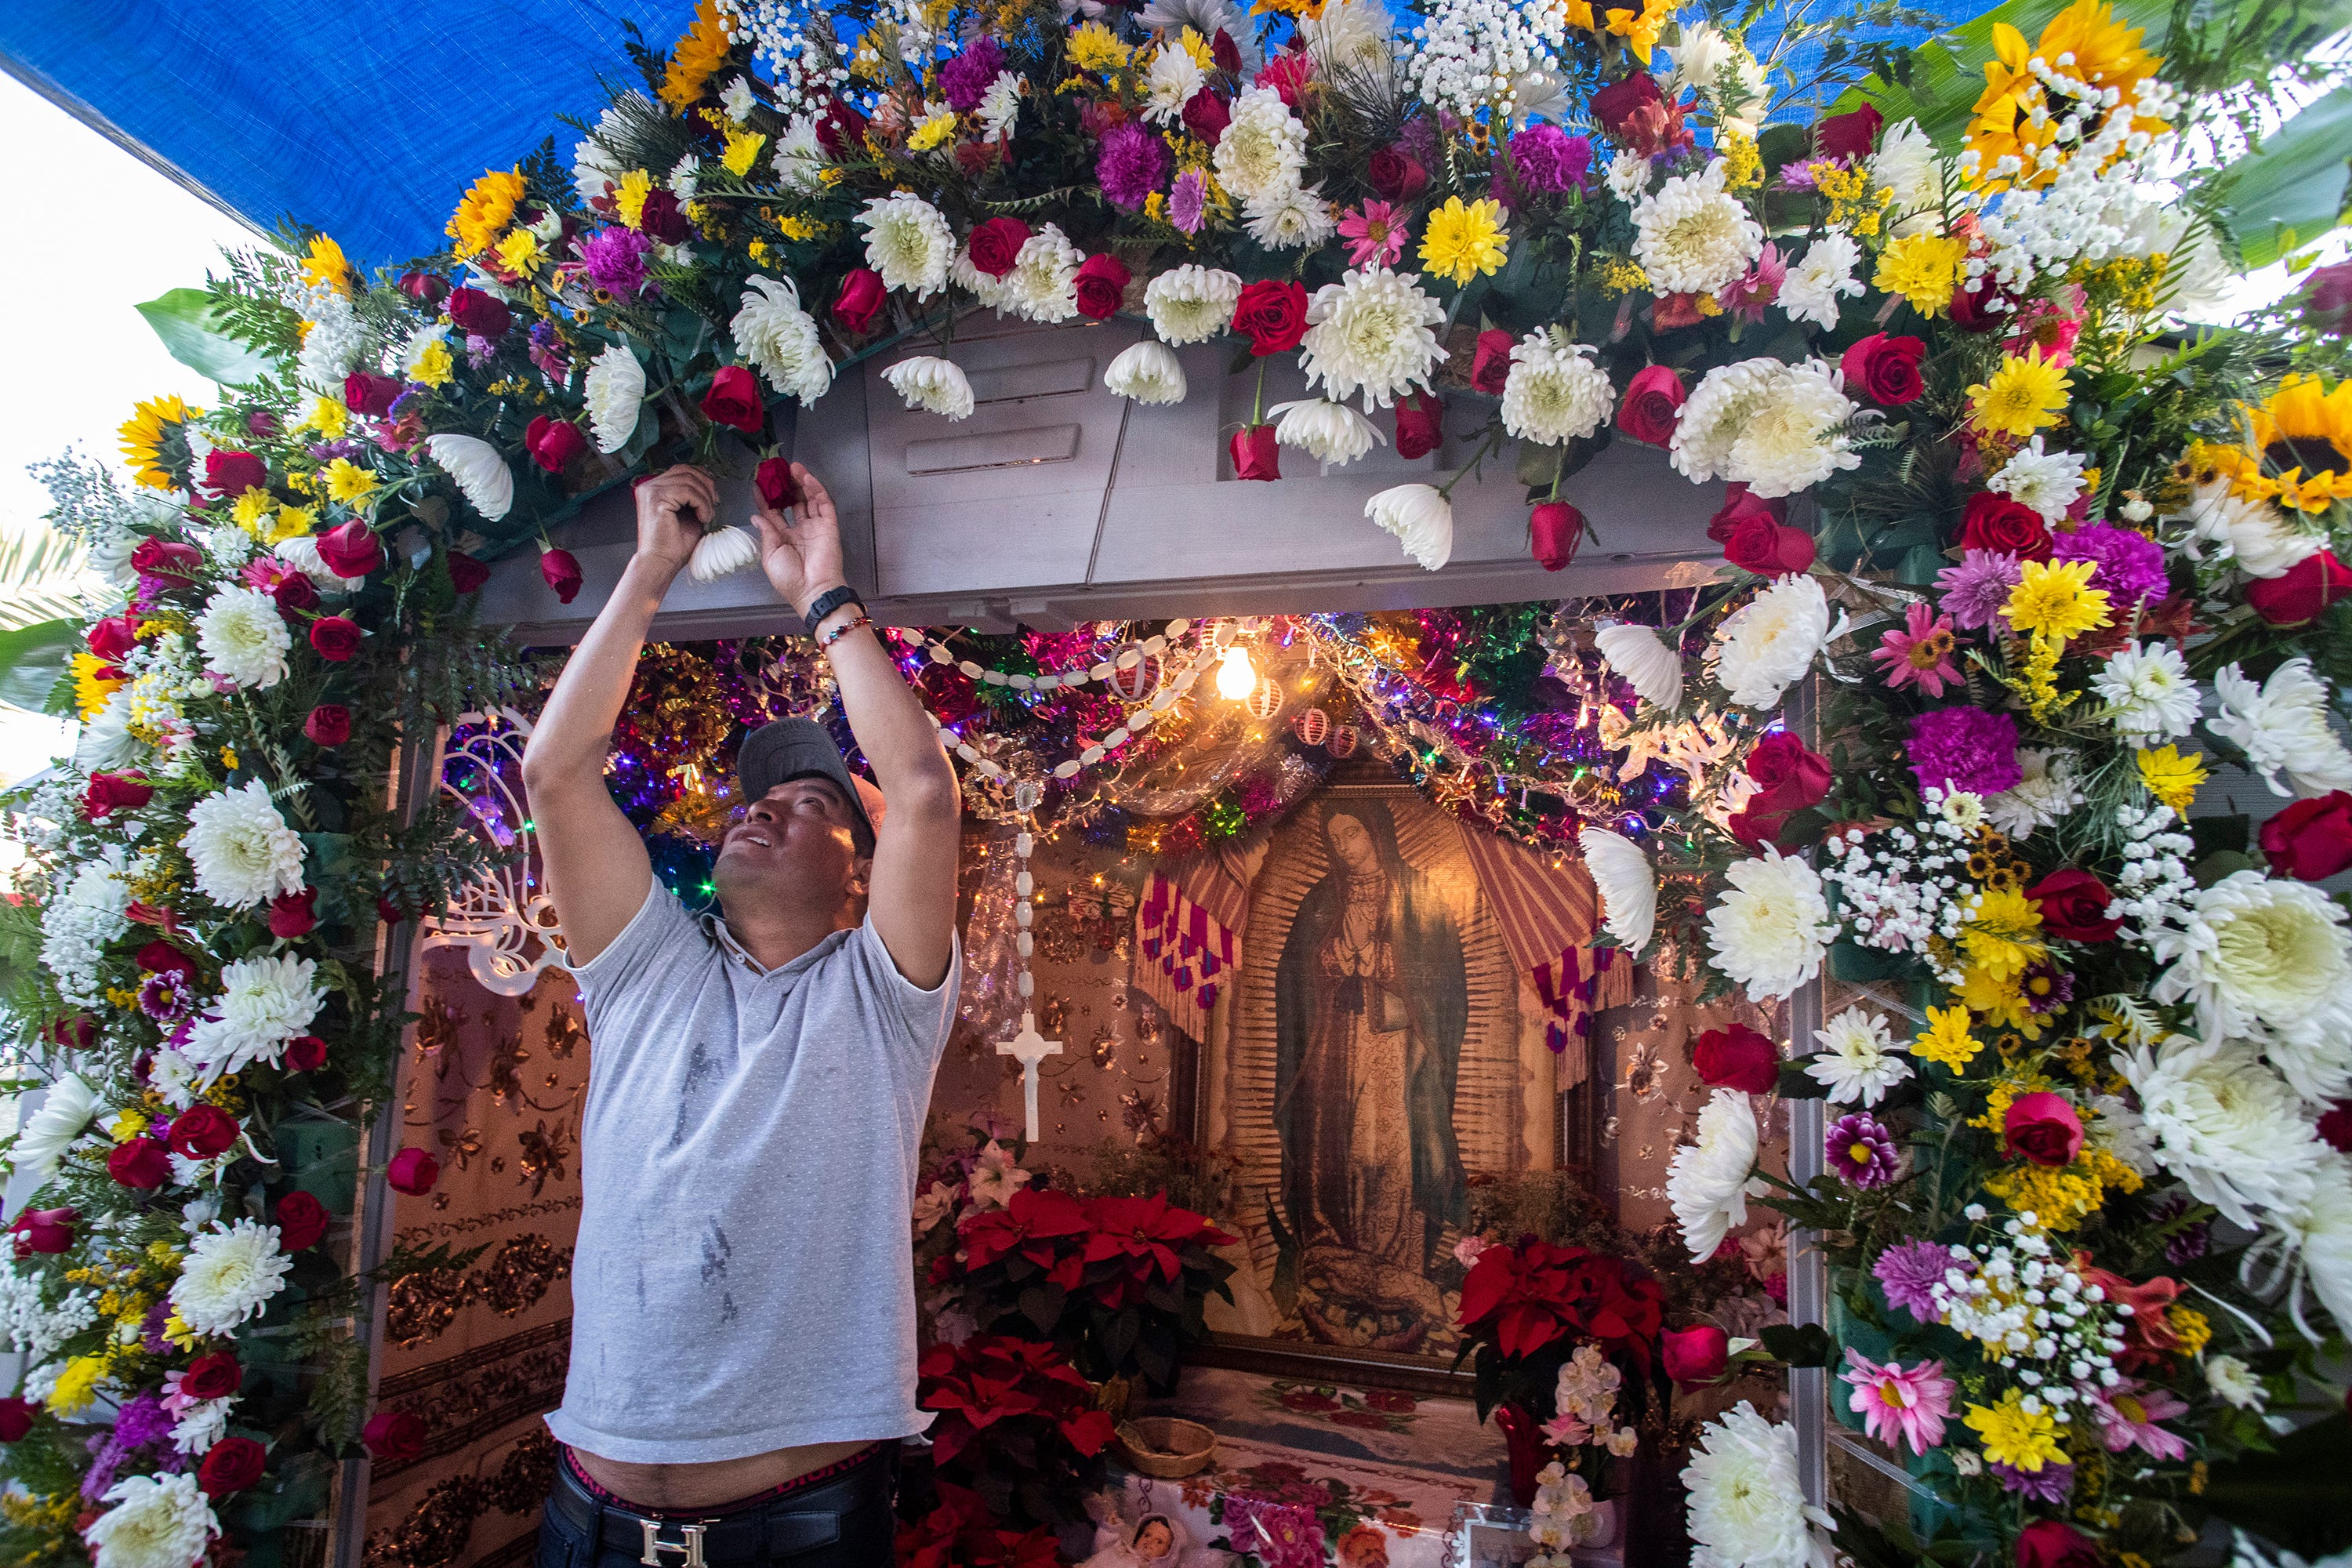 Martin Esteban arranges flowers on the altar to the Virgin of Guadalupe at the home of Audelio Diaz and Maria Elias. The Purepechas are recognized as some of the finest artisans in Mexico.